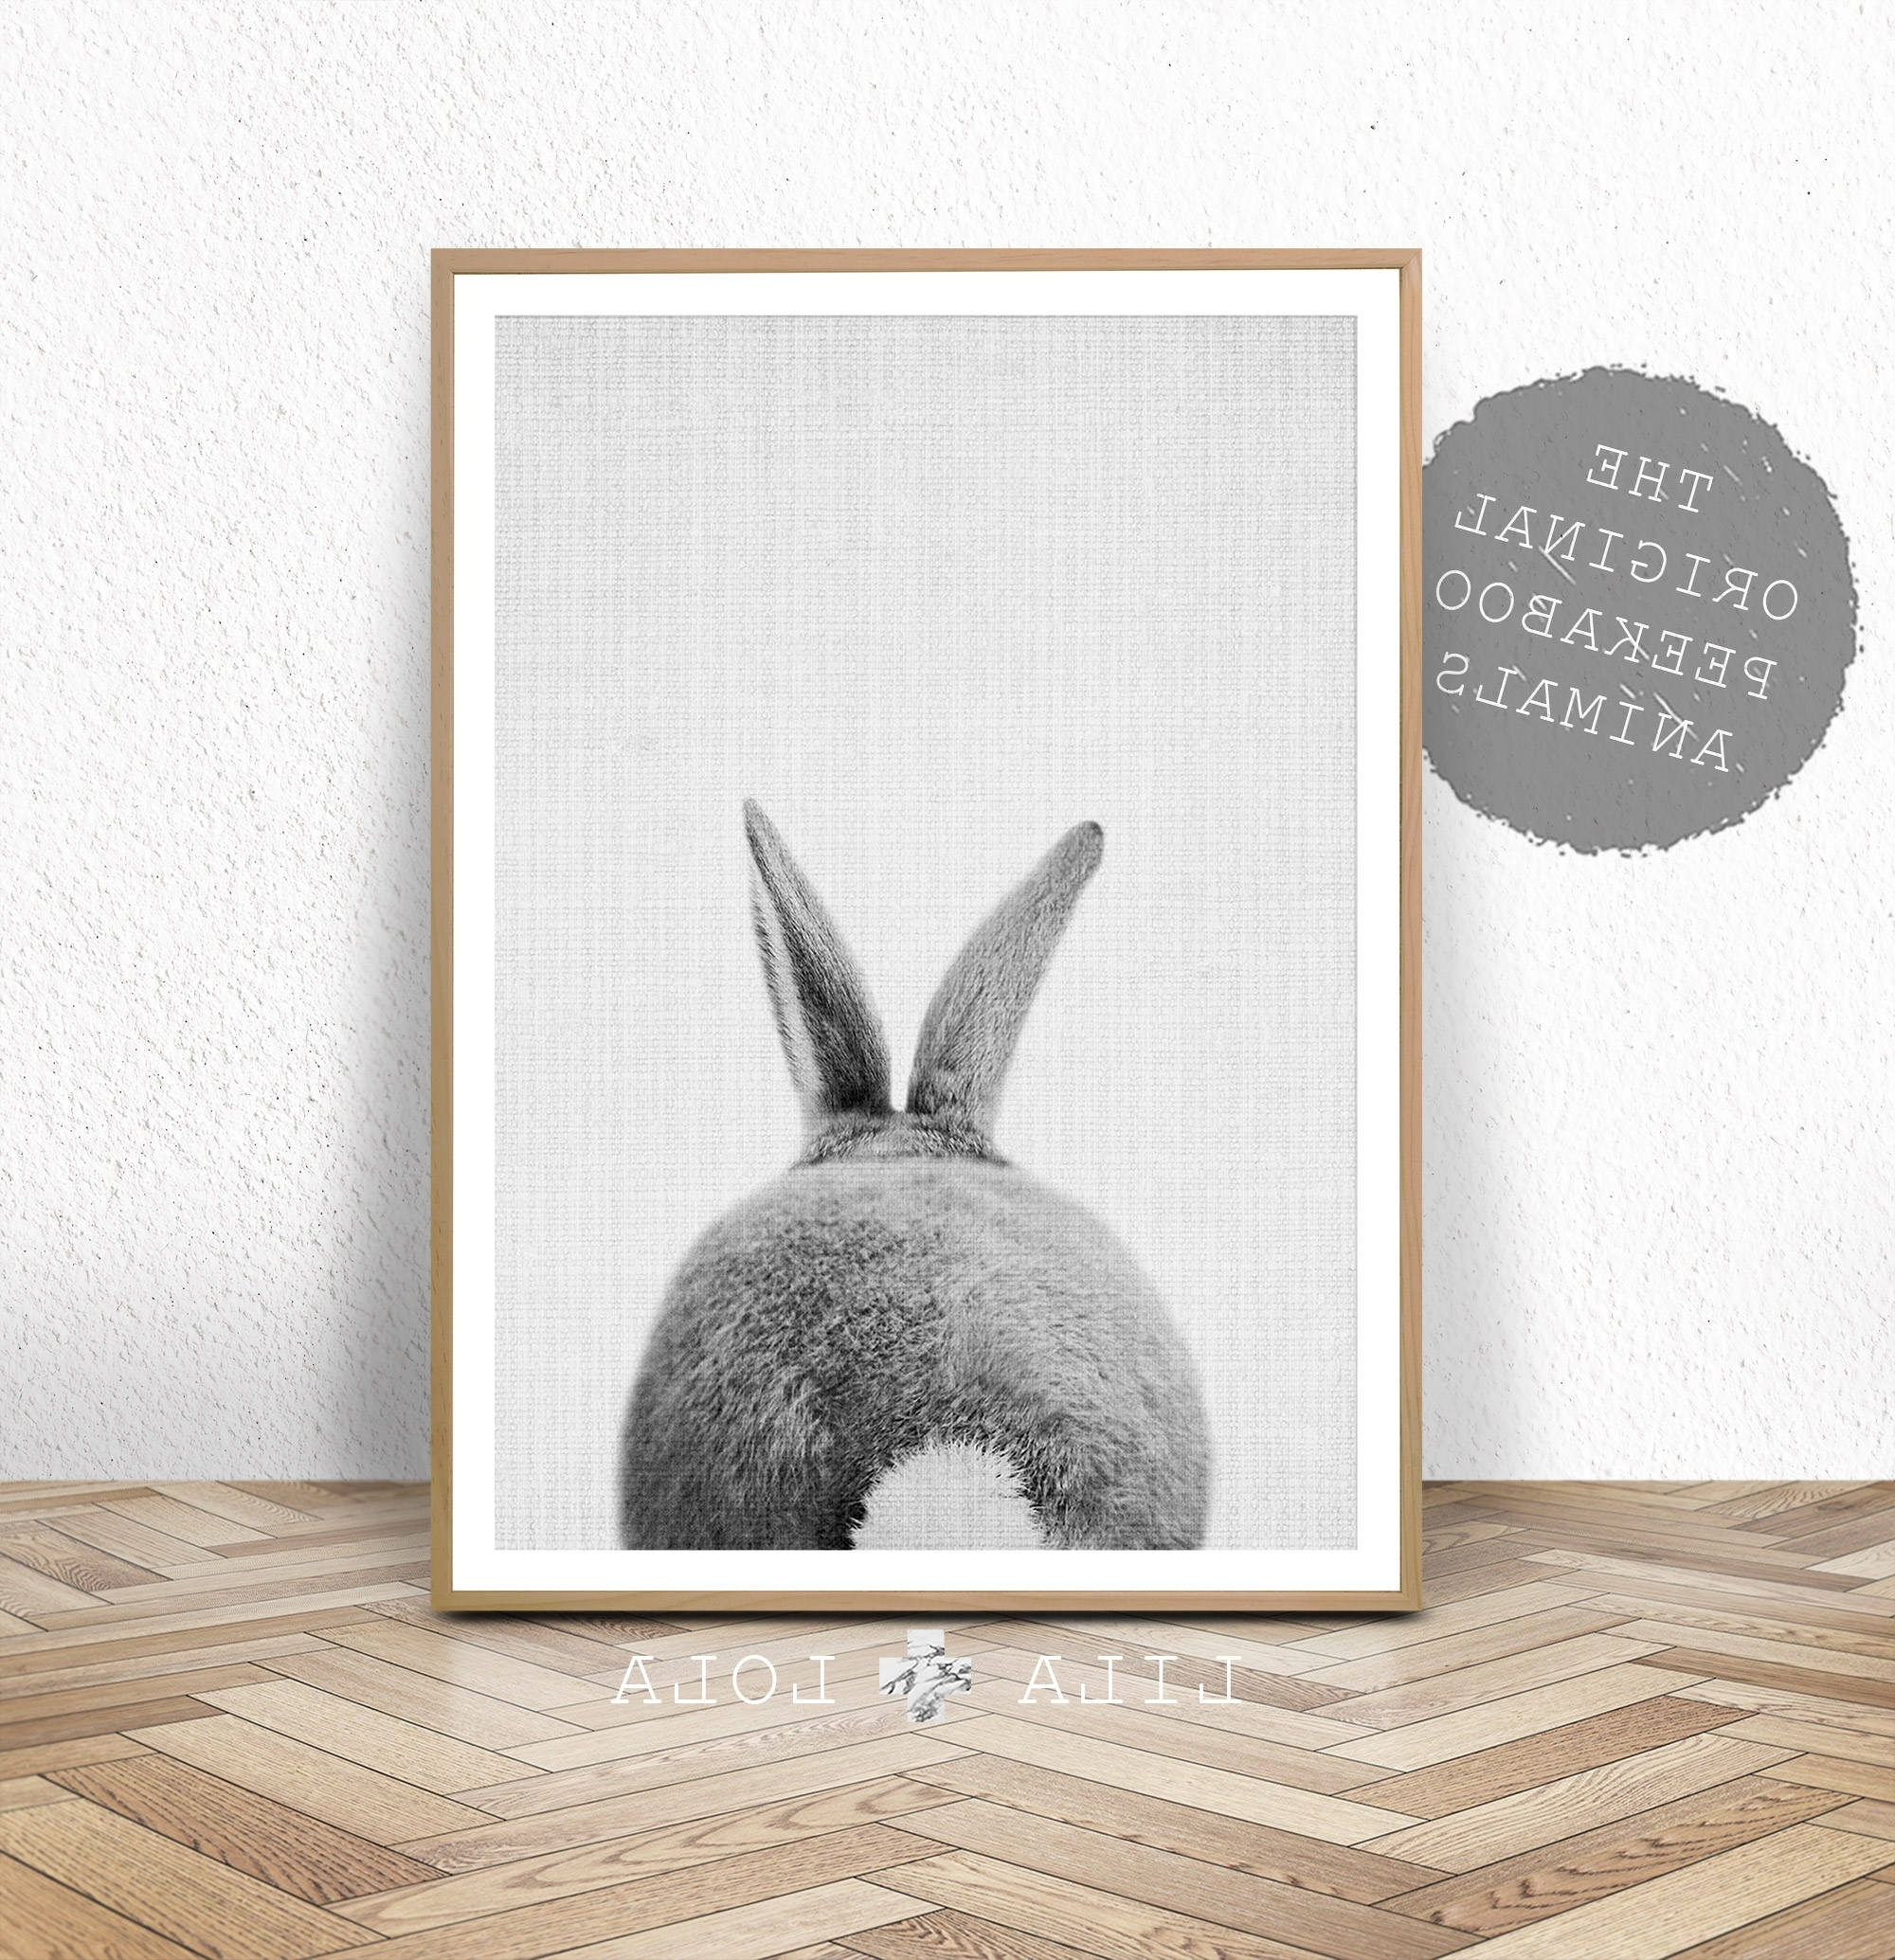 Preferred Nursery Print, Bunny Rabbit Tail Wall Art, Printable Instant Digital Intended For Bunny Wall Art (View 13 of 15)